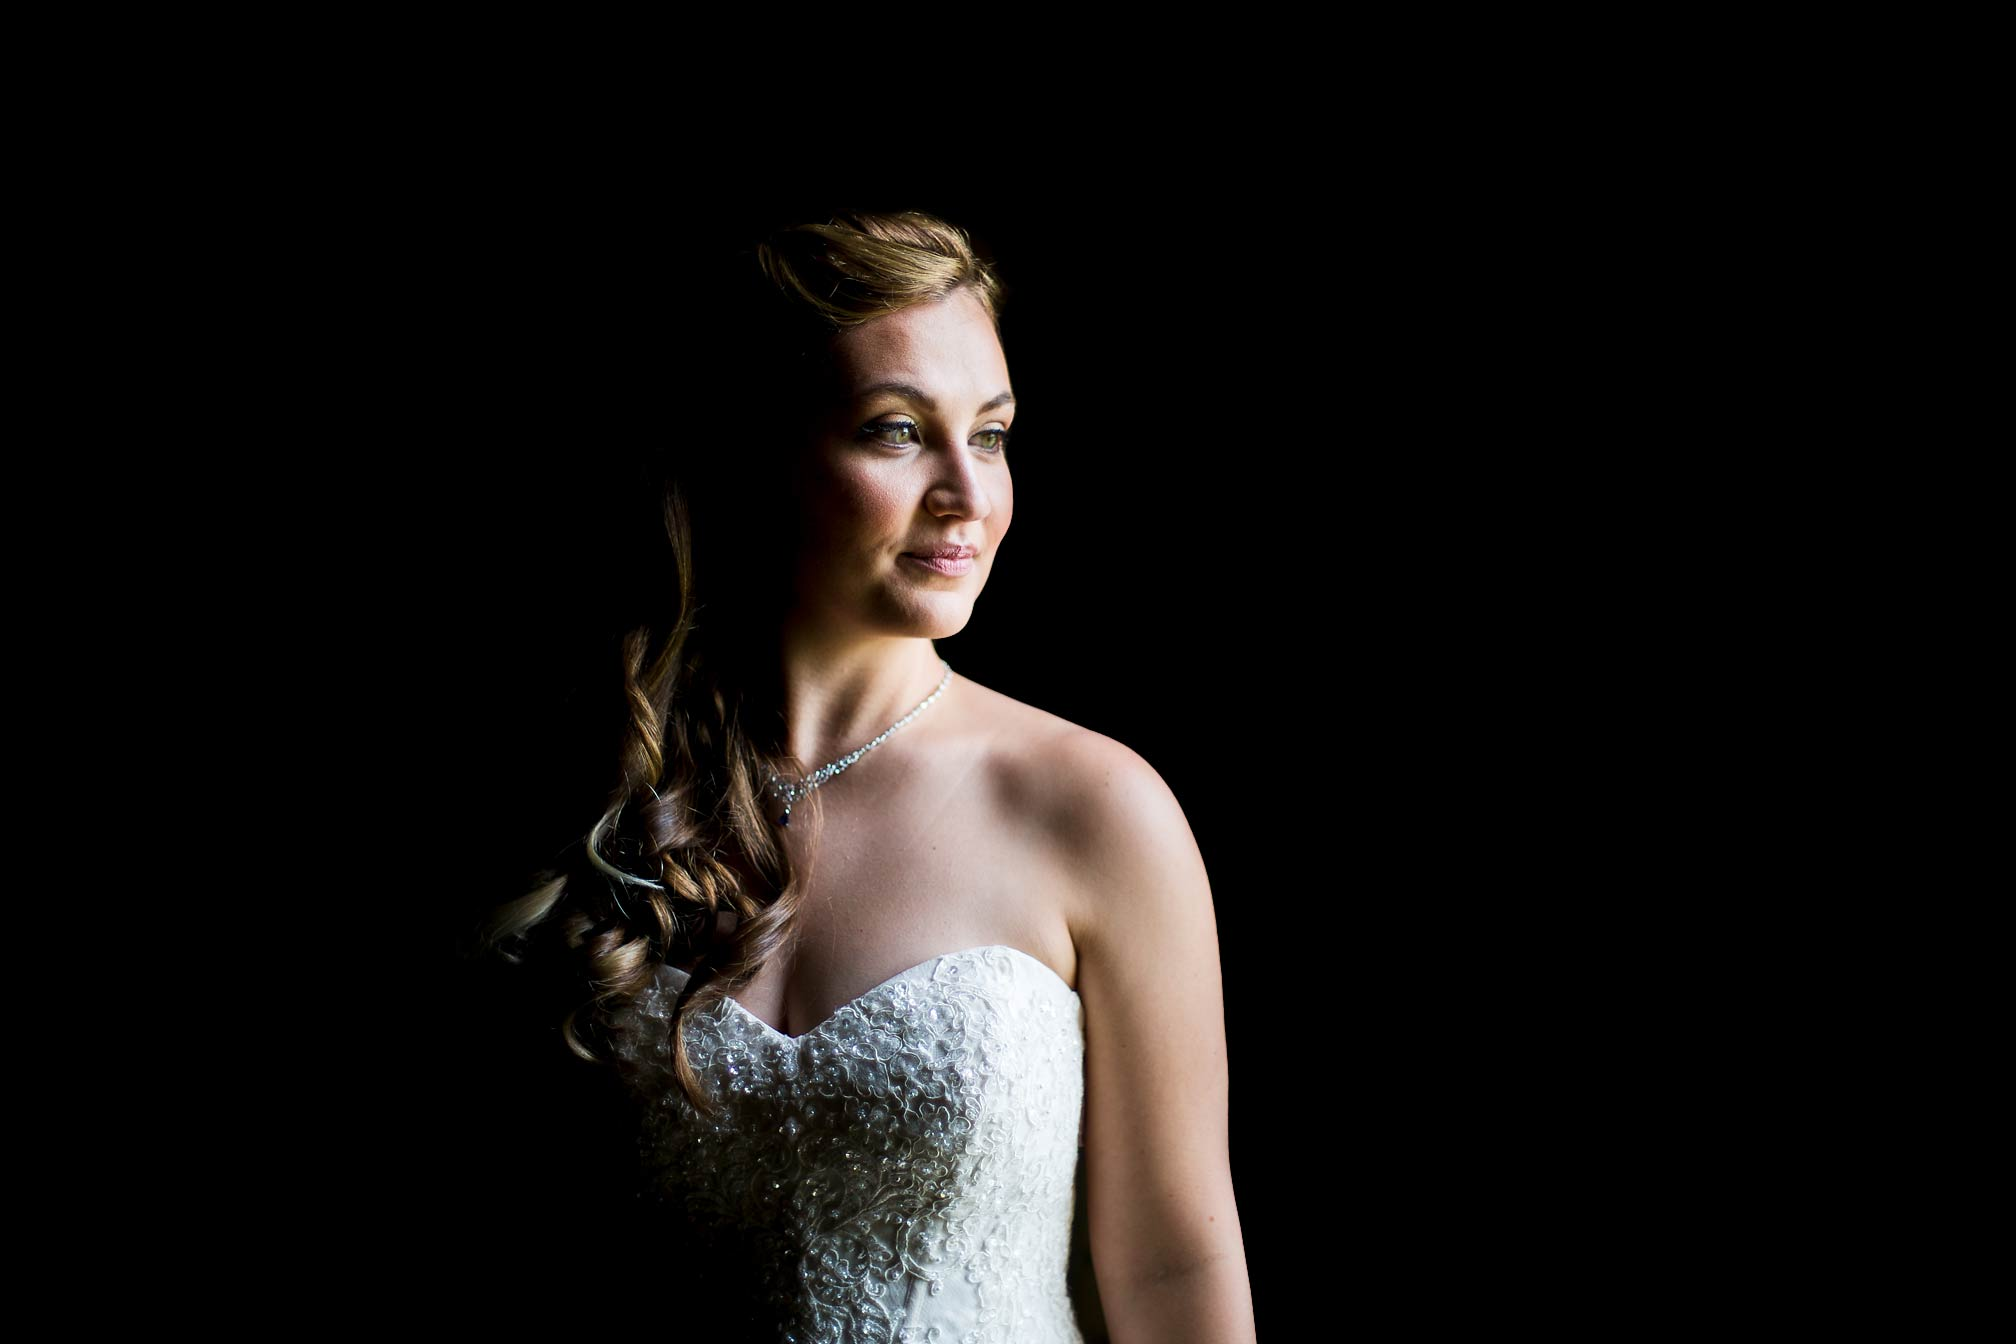 Stunning bridal portrait using window light